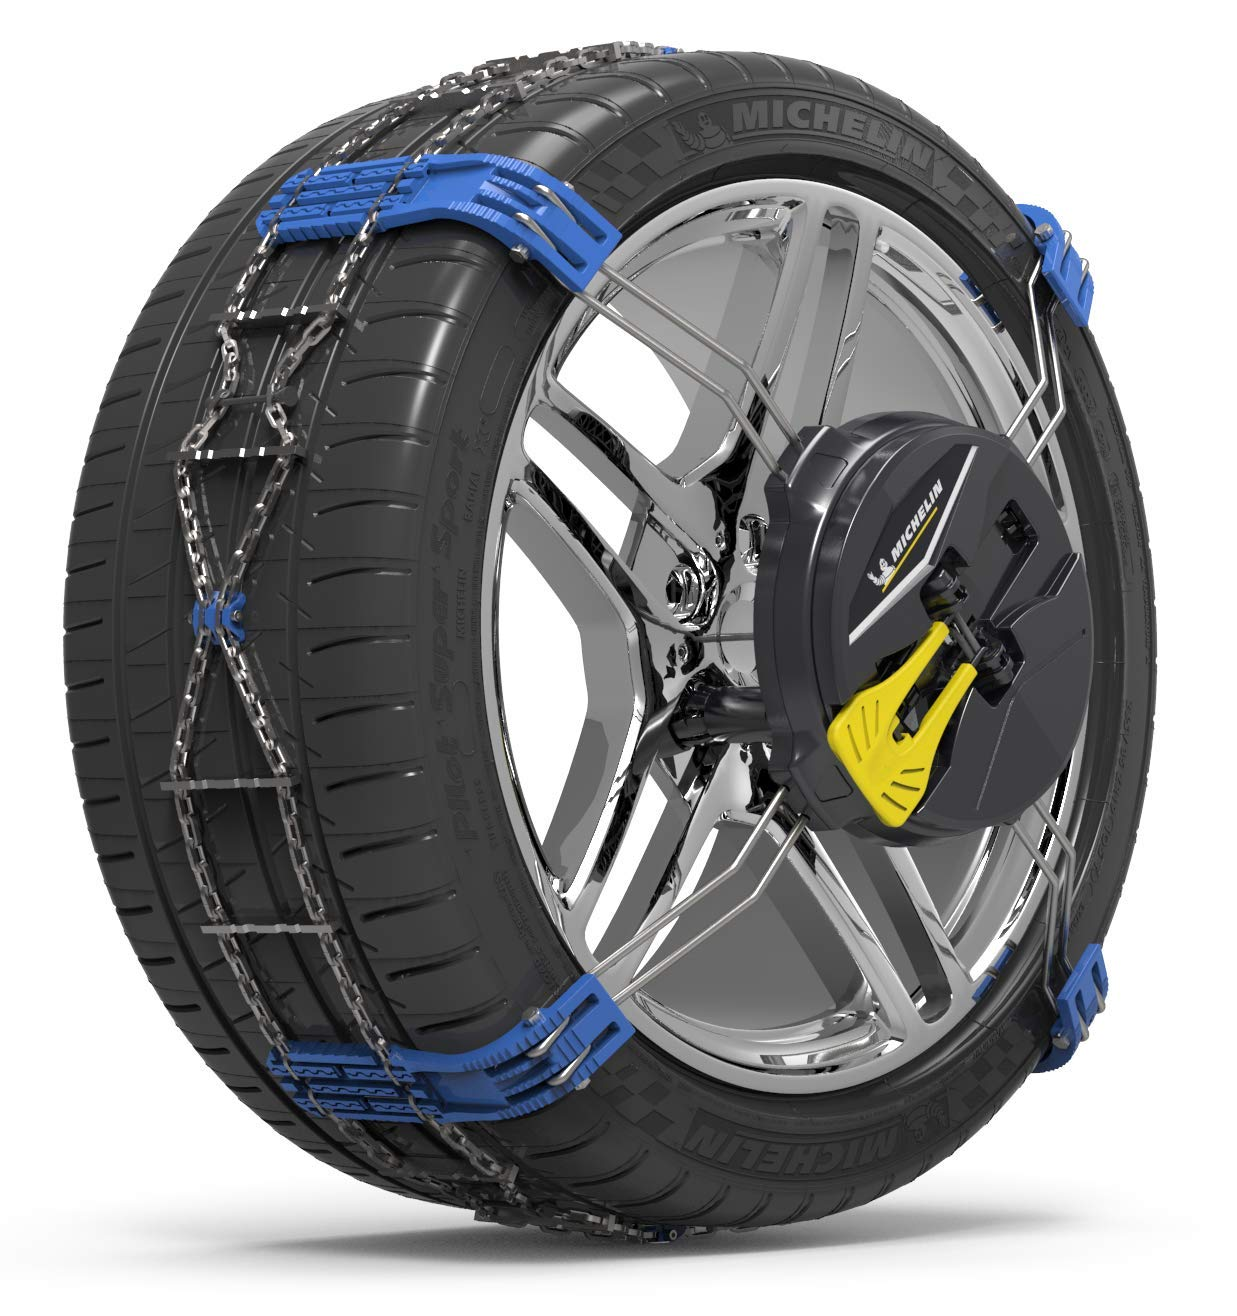 MICHELIN Fast Grip Chaines à neige frontales